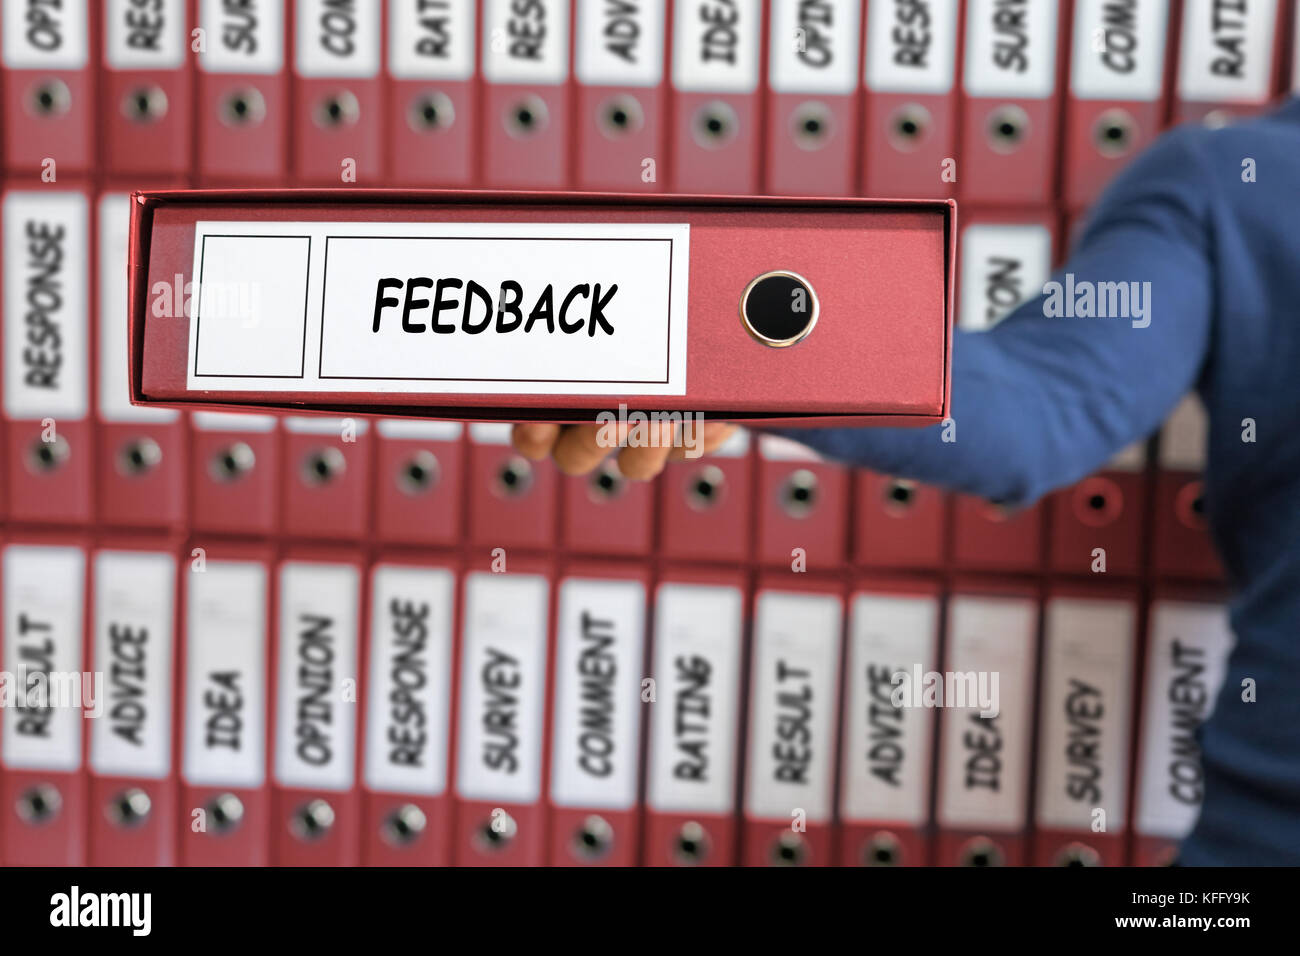 Feedback concept. Feedback Business Quality Opinion Service Communication concept. Young man holding ring binder. - Stock Image